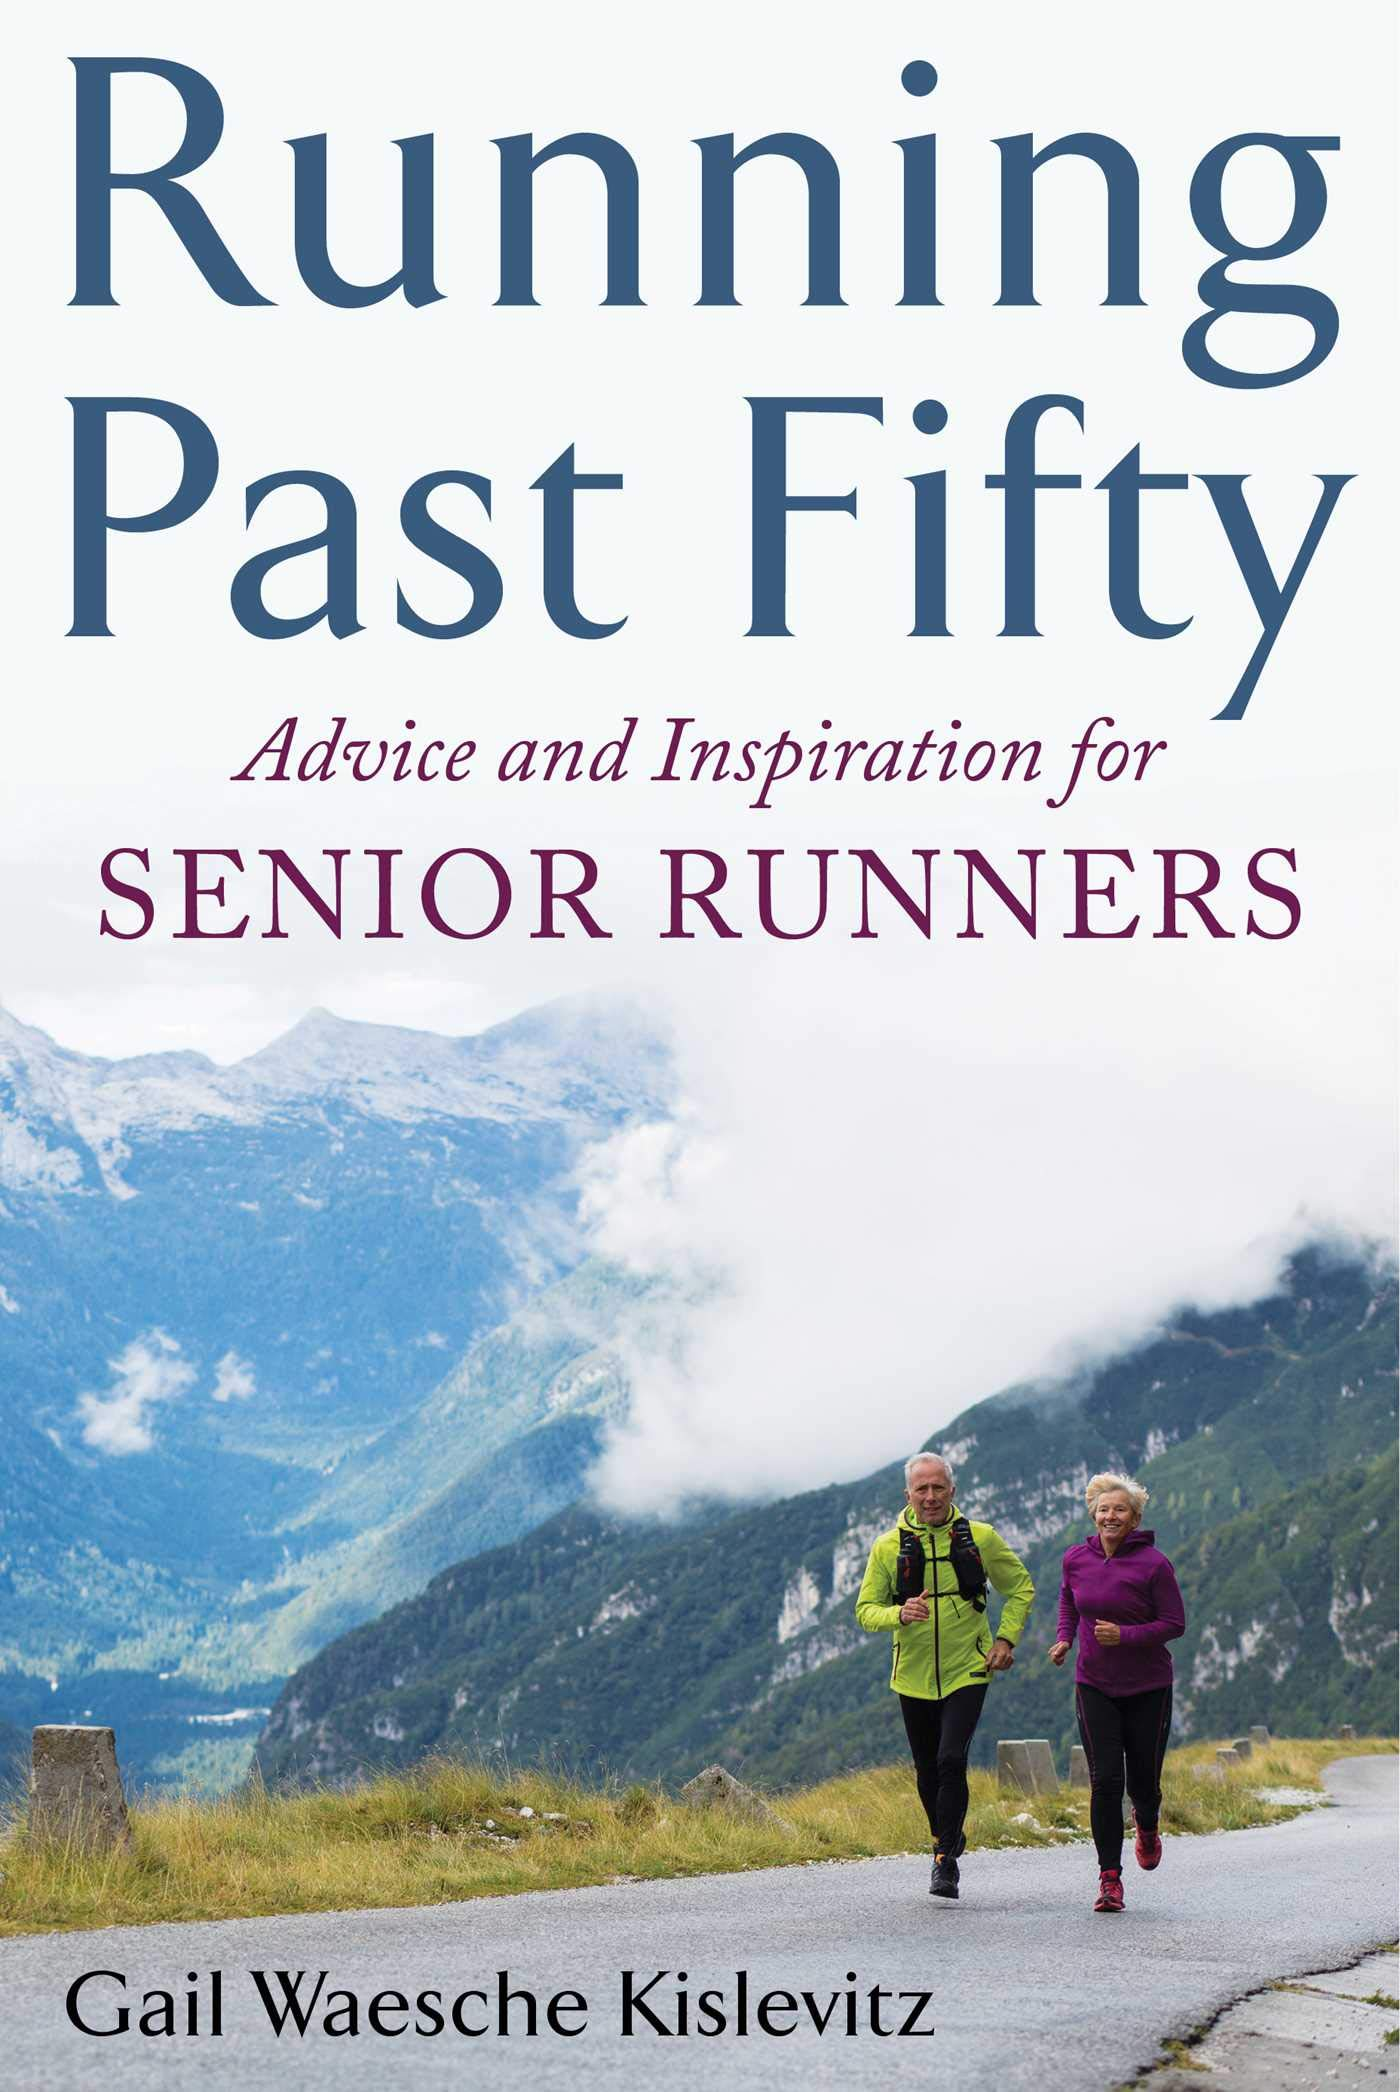 Running Past Fifty Inspiration Runners product image